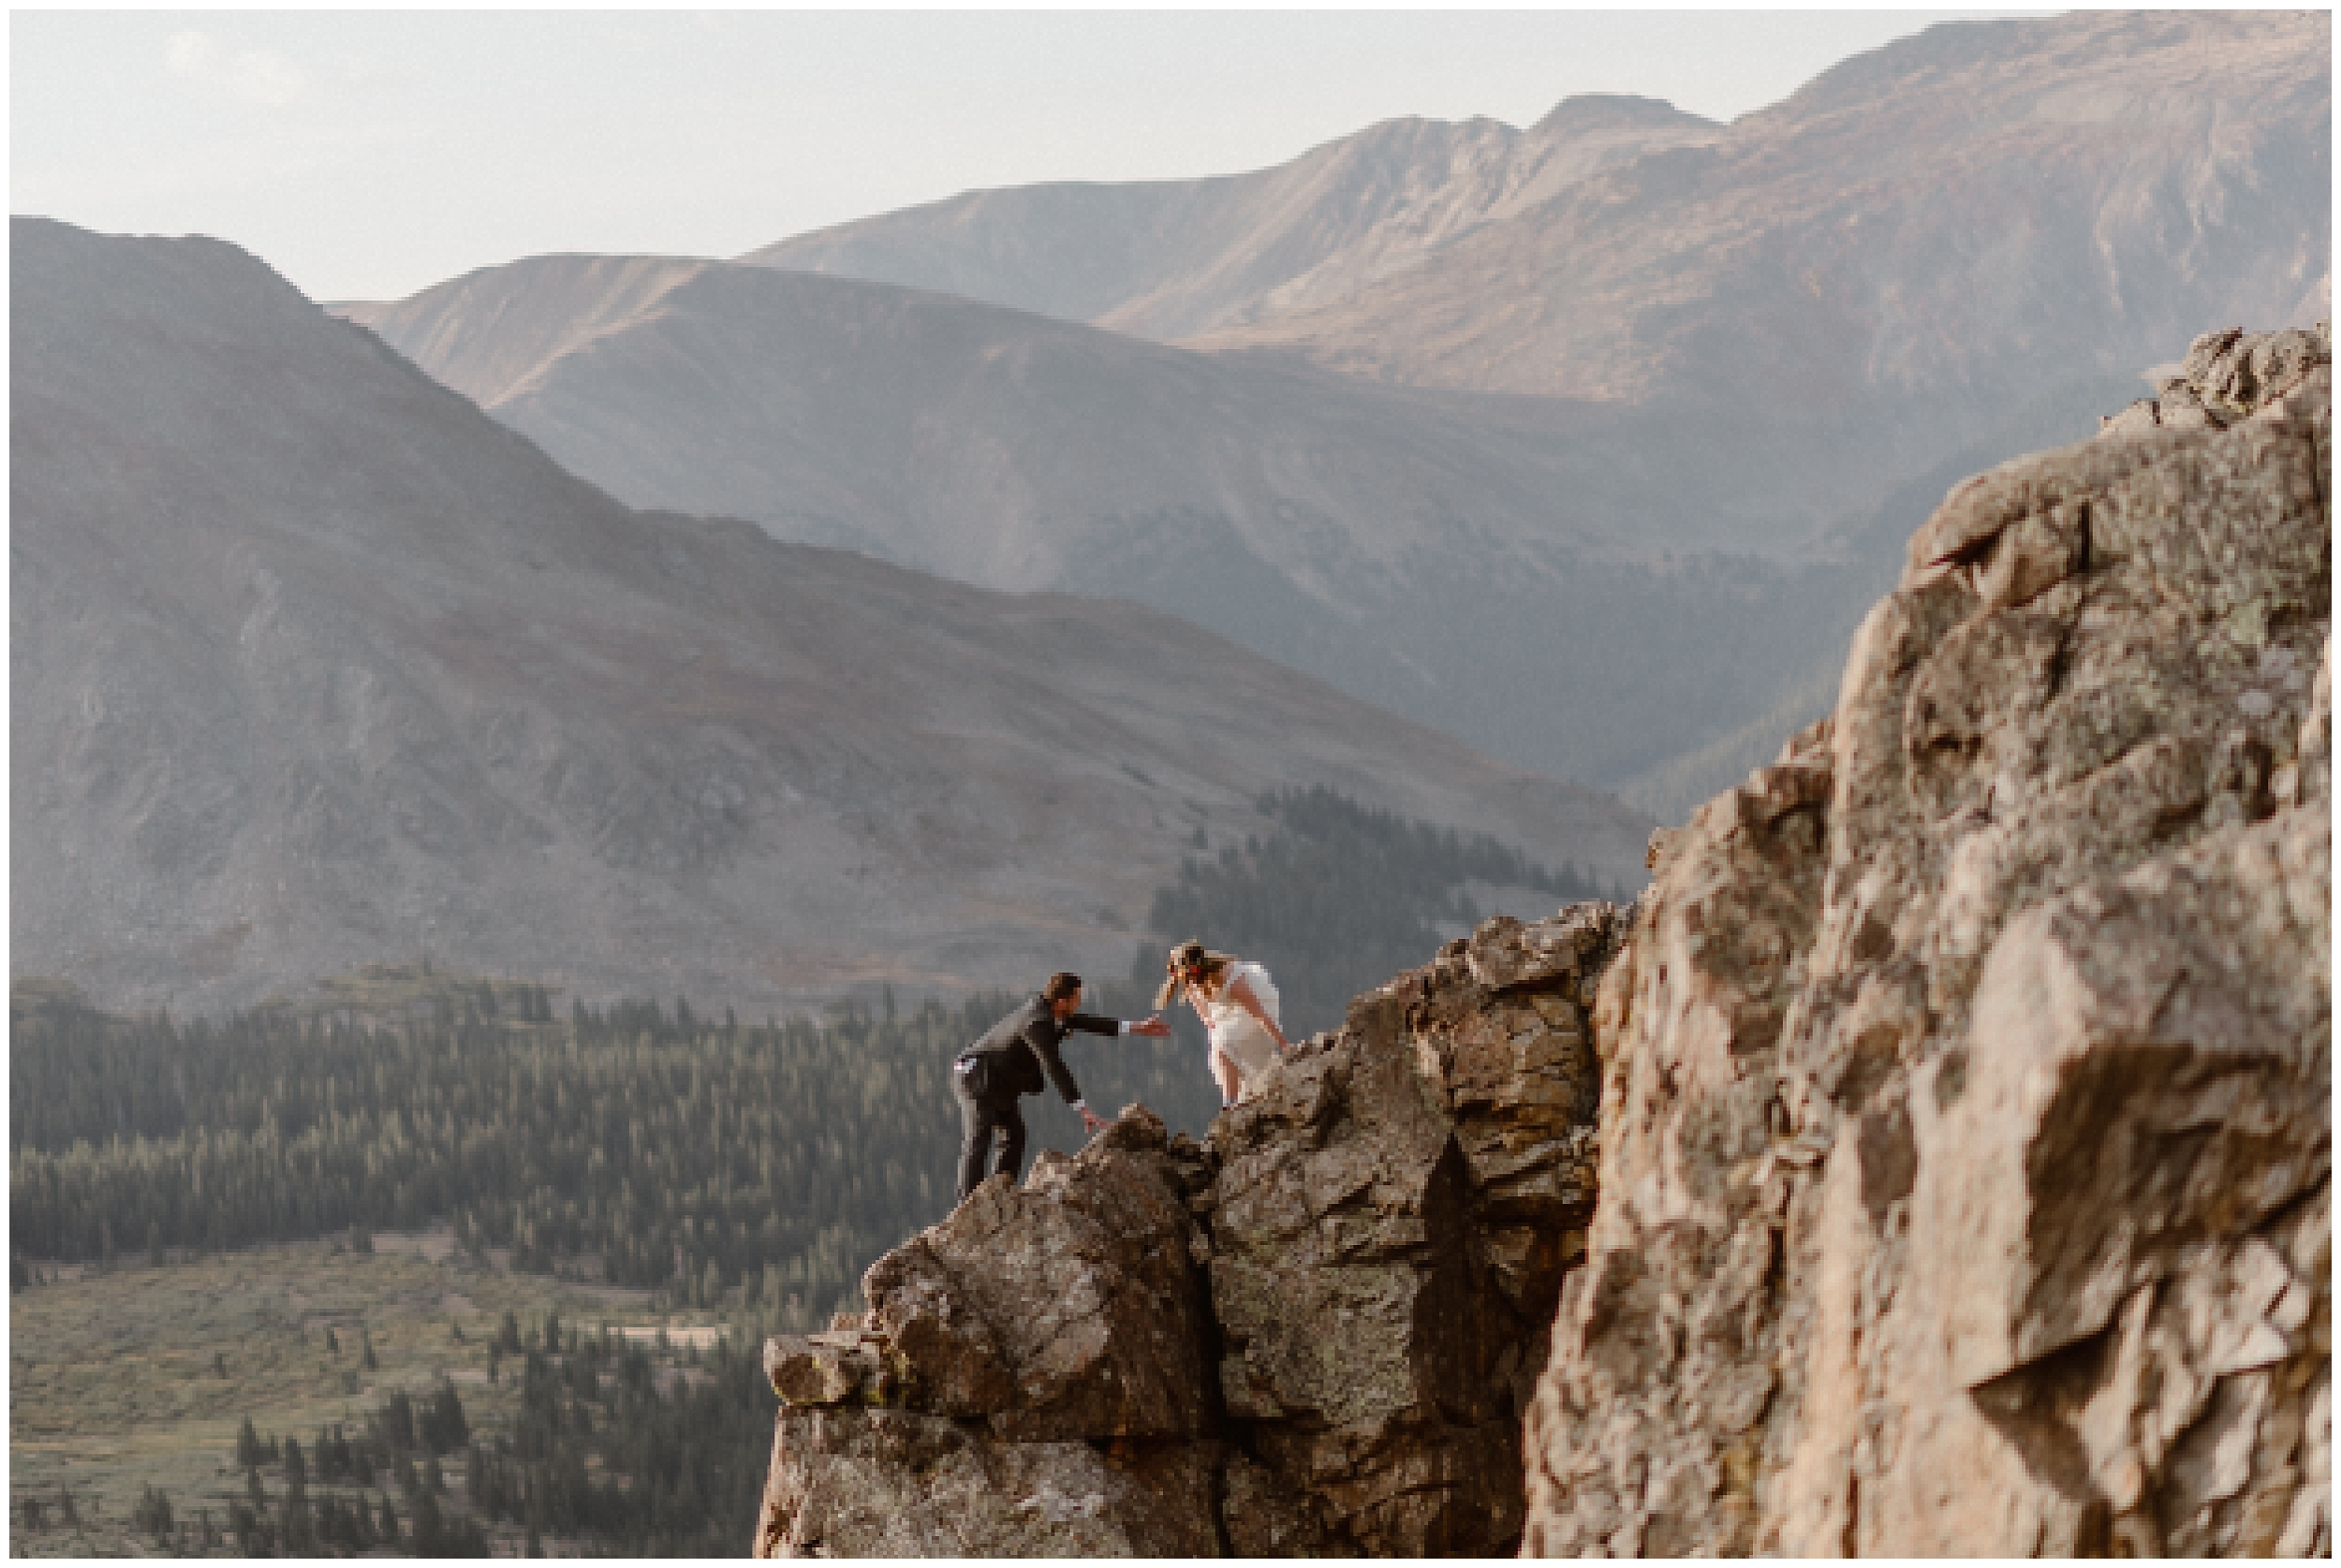 A bride and ag room take hands as they scramble up the side of a mountain together in their wedding day attire. Behind them, giant mountain ranges and Colorado forests can be seen. This destination wedding was the elopement location of this couple's dreams and was the perfect place to have their Colorado mountain wedding.